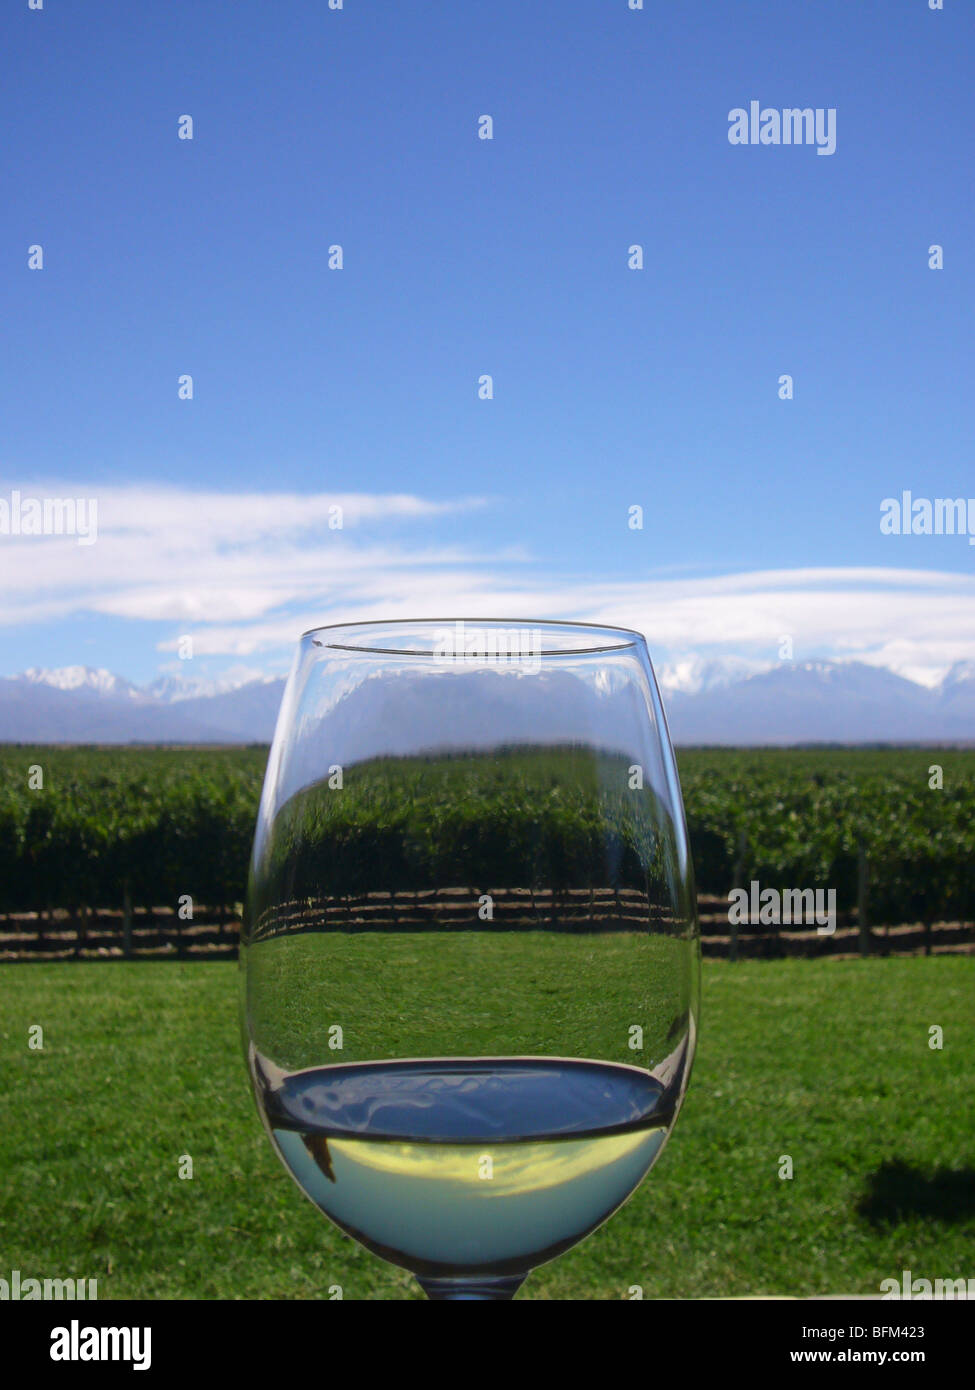 The vineyards of Ande Luna, with the Andes behind, as seen from the terrace of the vineyard through a glass of chardonnay. - Stock Image